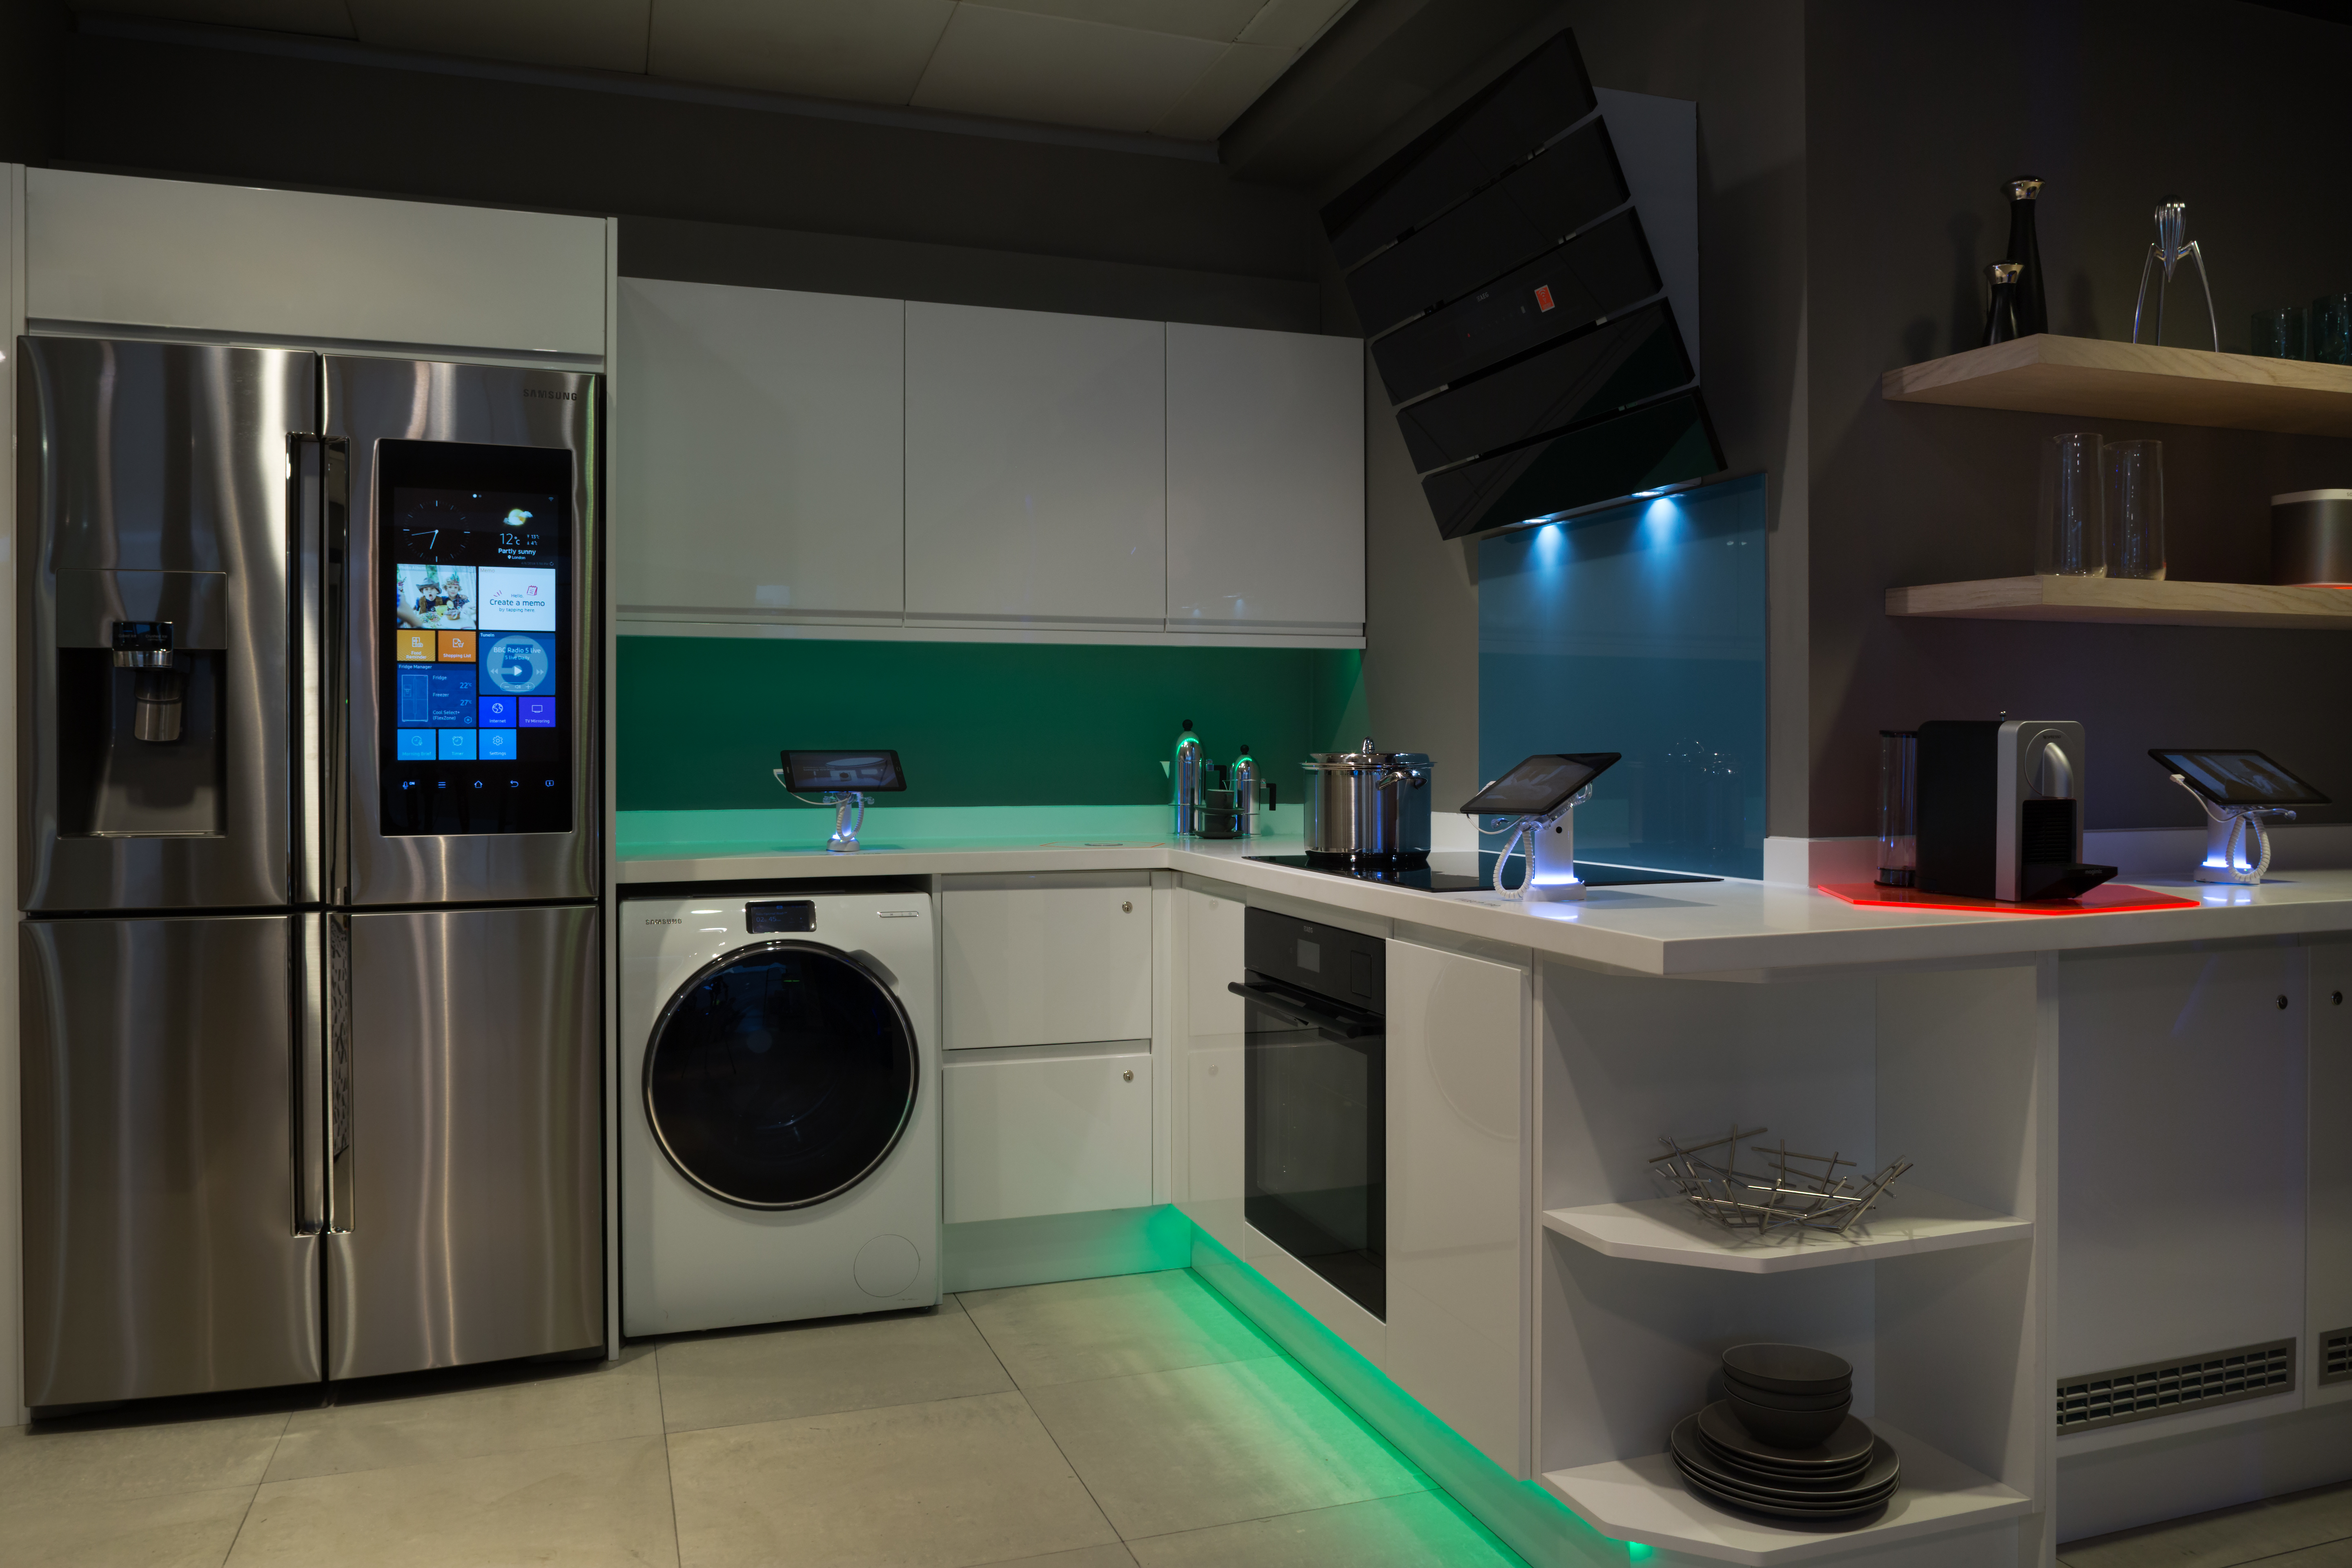 John Lewis Kitchen Appliances Smart Home Stores London Has A Physical Store For Iot